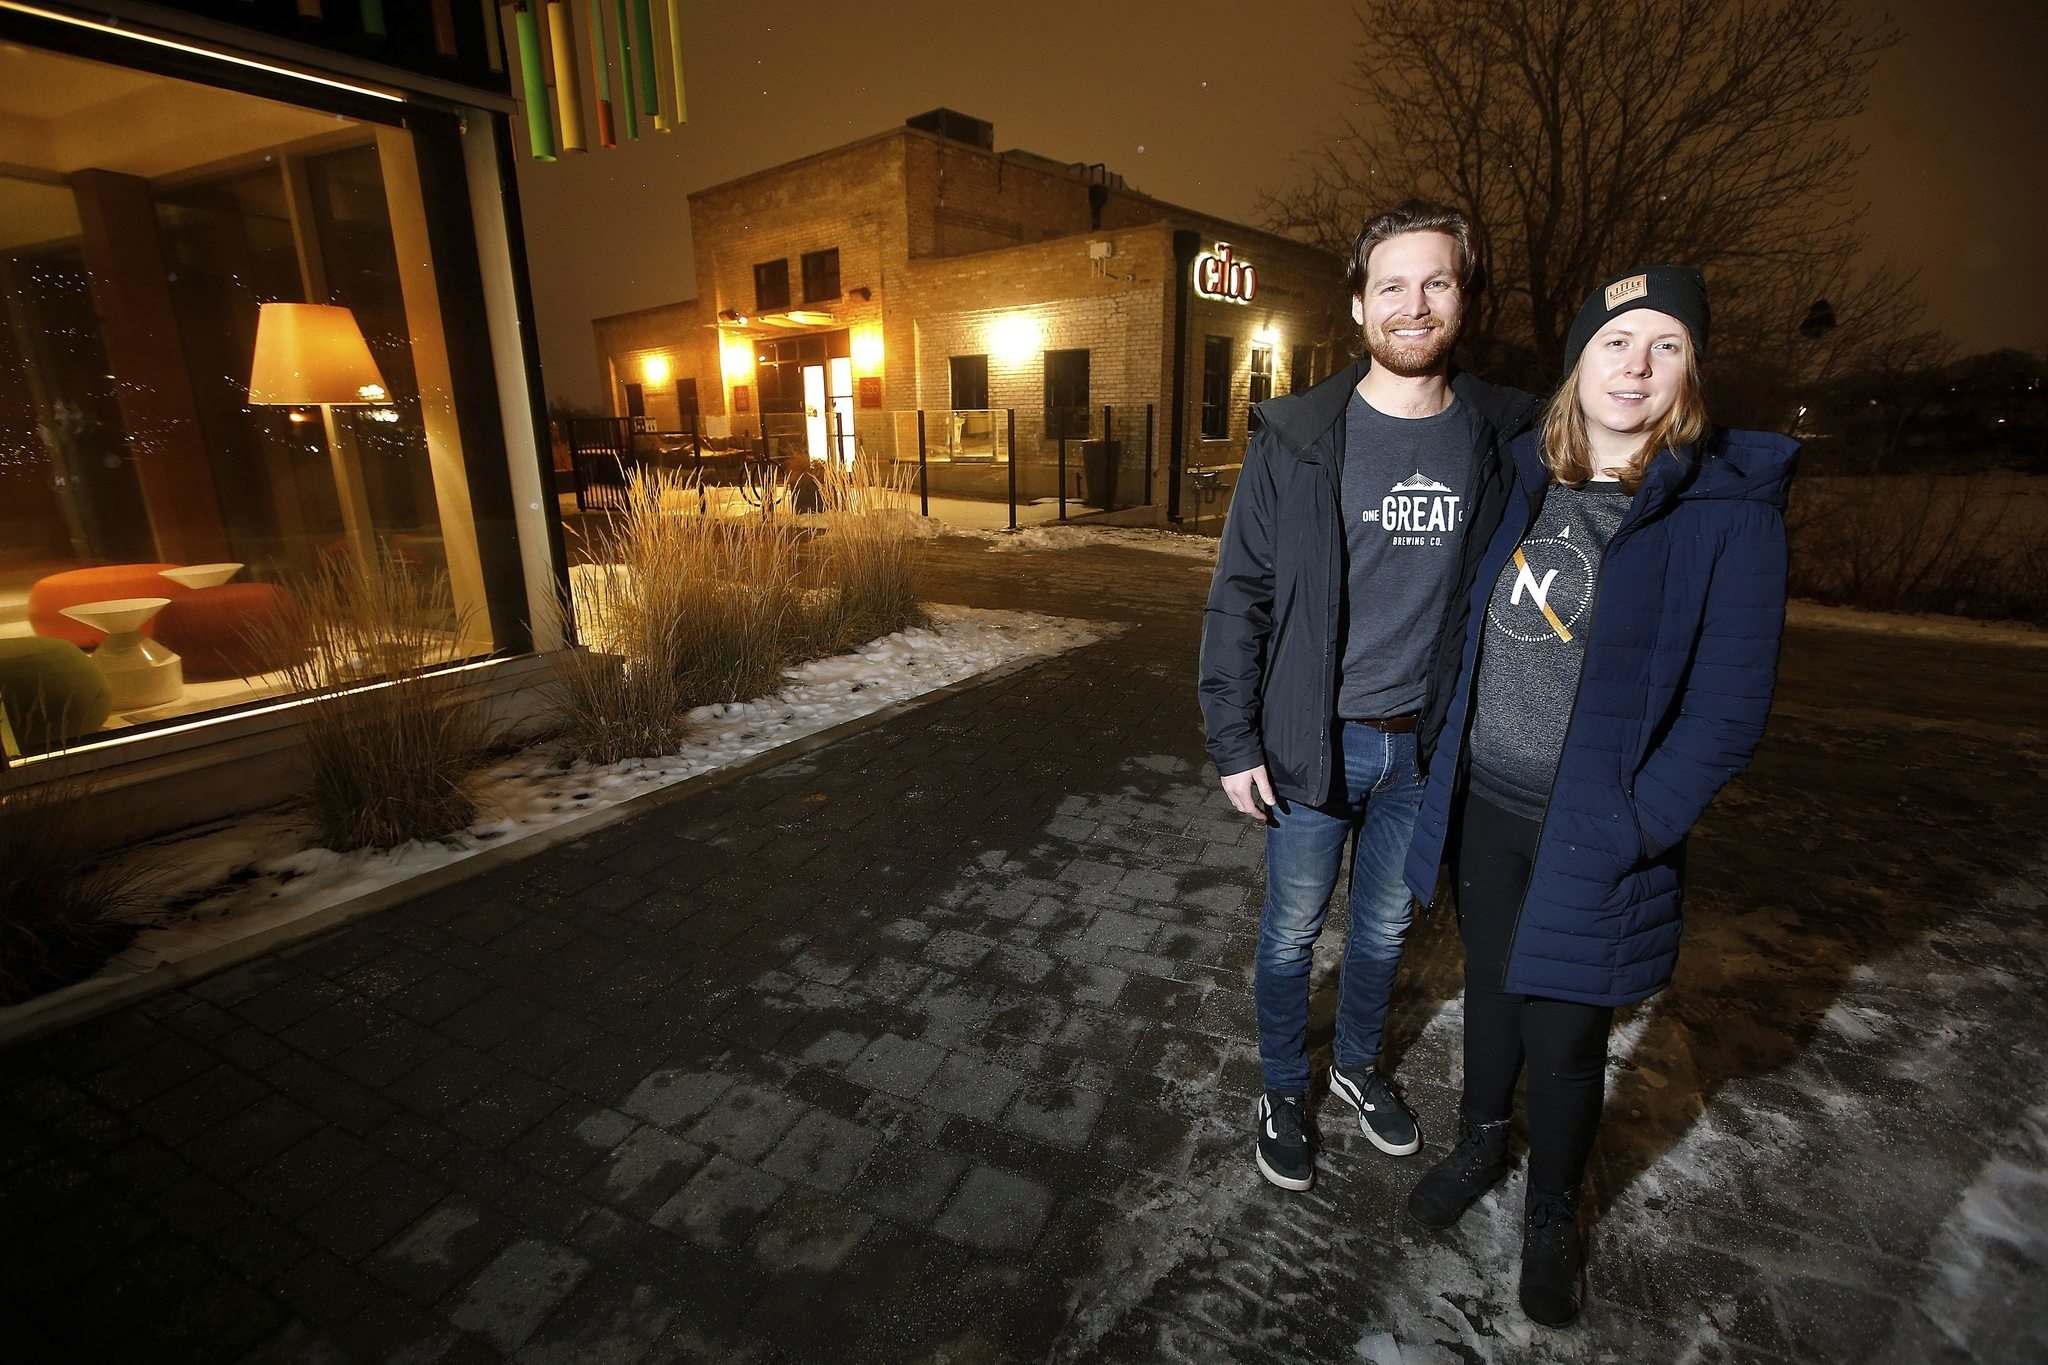 JOHN WOODS / WINNIPEG FREE PRESS</p><p>Husband and wife Rob Holter-Ferguson and Danielle Northam, creators of a website called Let's Order Delivery where Manitobans can find local restaurants and order delivery directly from them, stand outside Cibo, one of the Winnipeg restaurants on their site.</p>